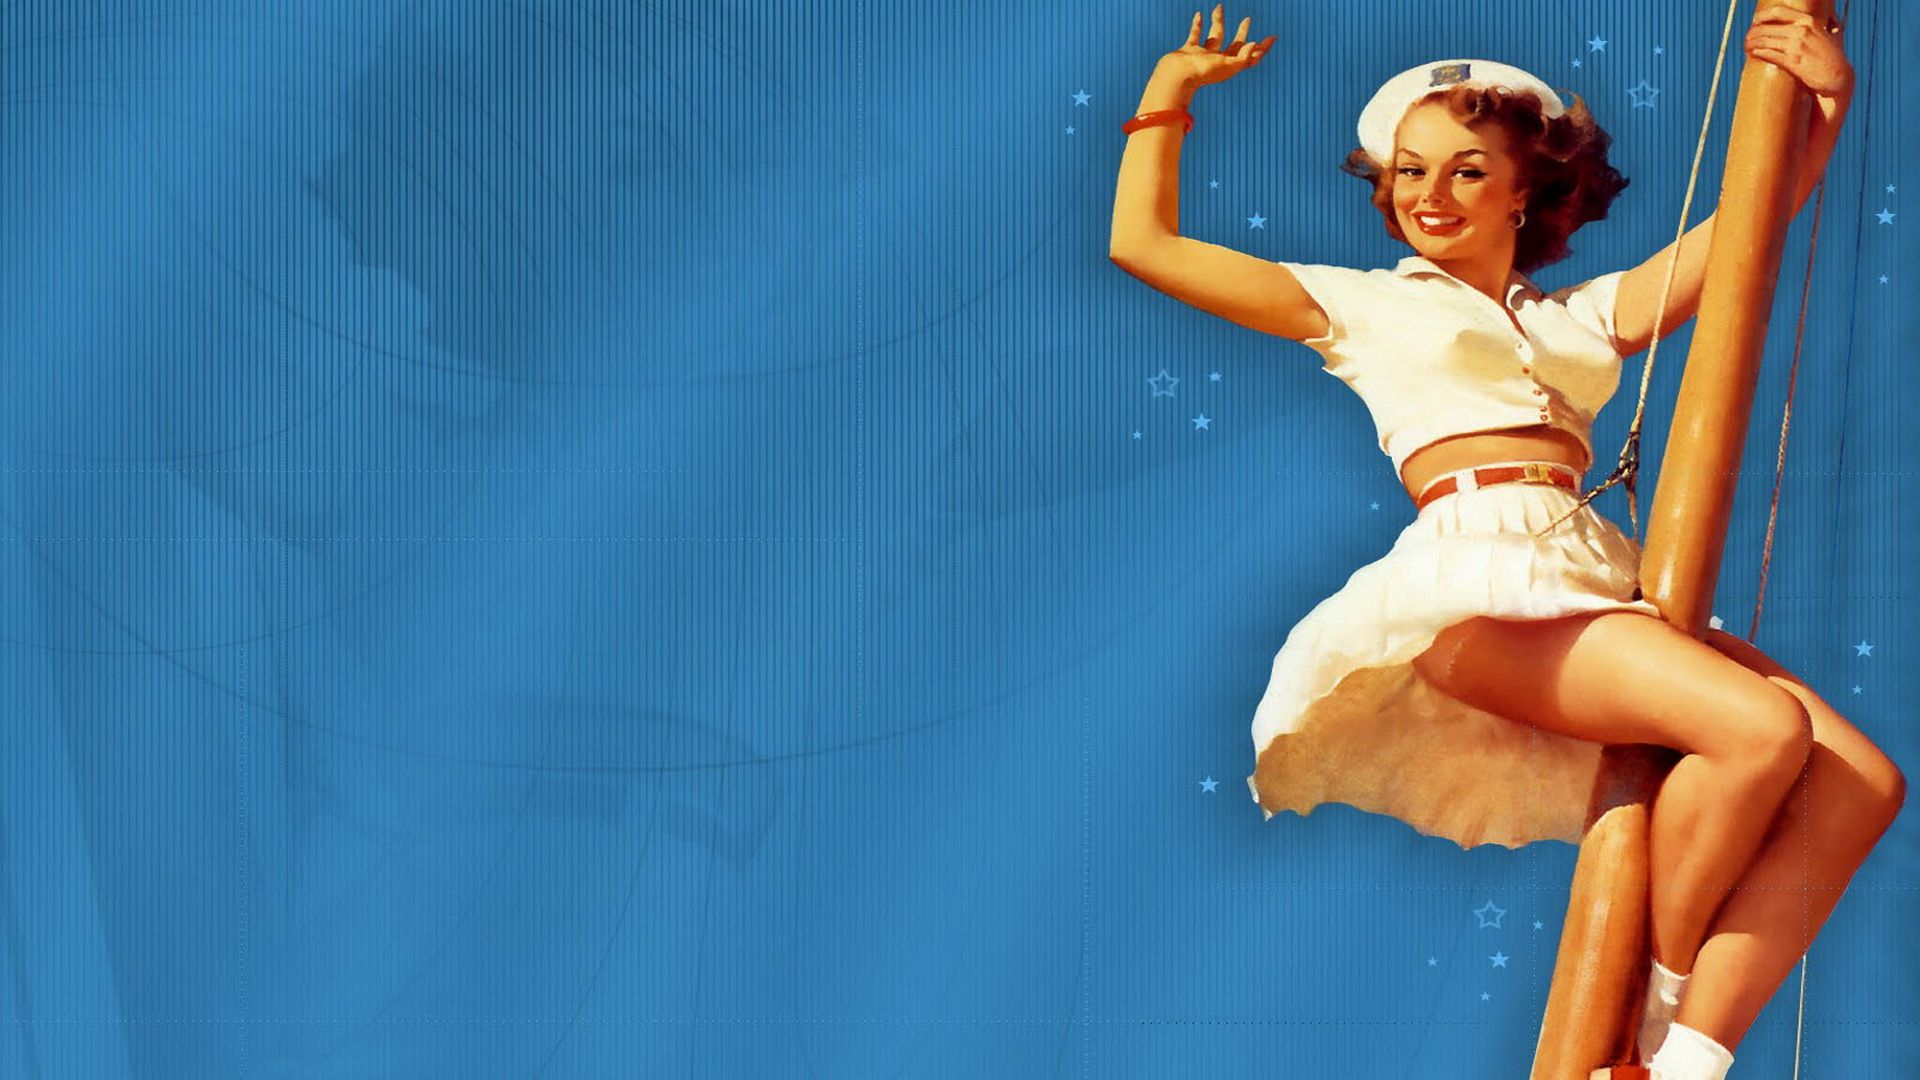 Vintage Pin Up Girls Images Thecelebritypix Pinup Wall Papers